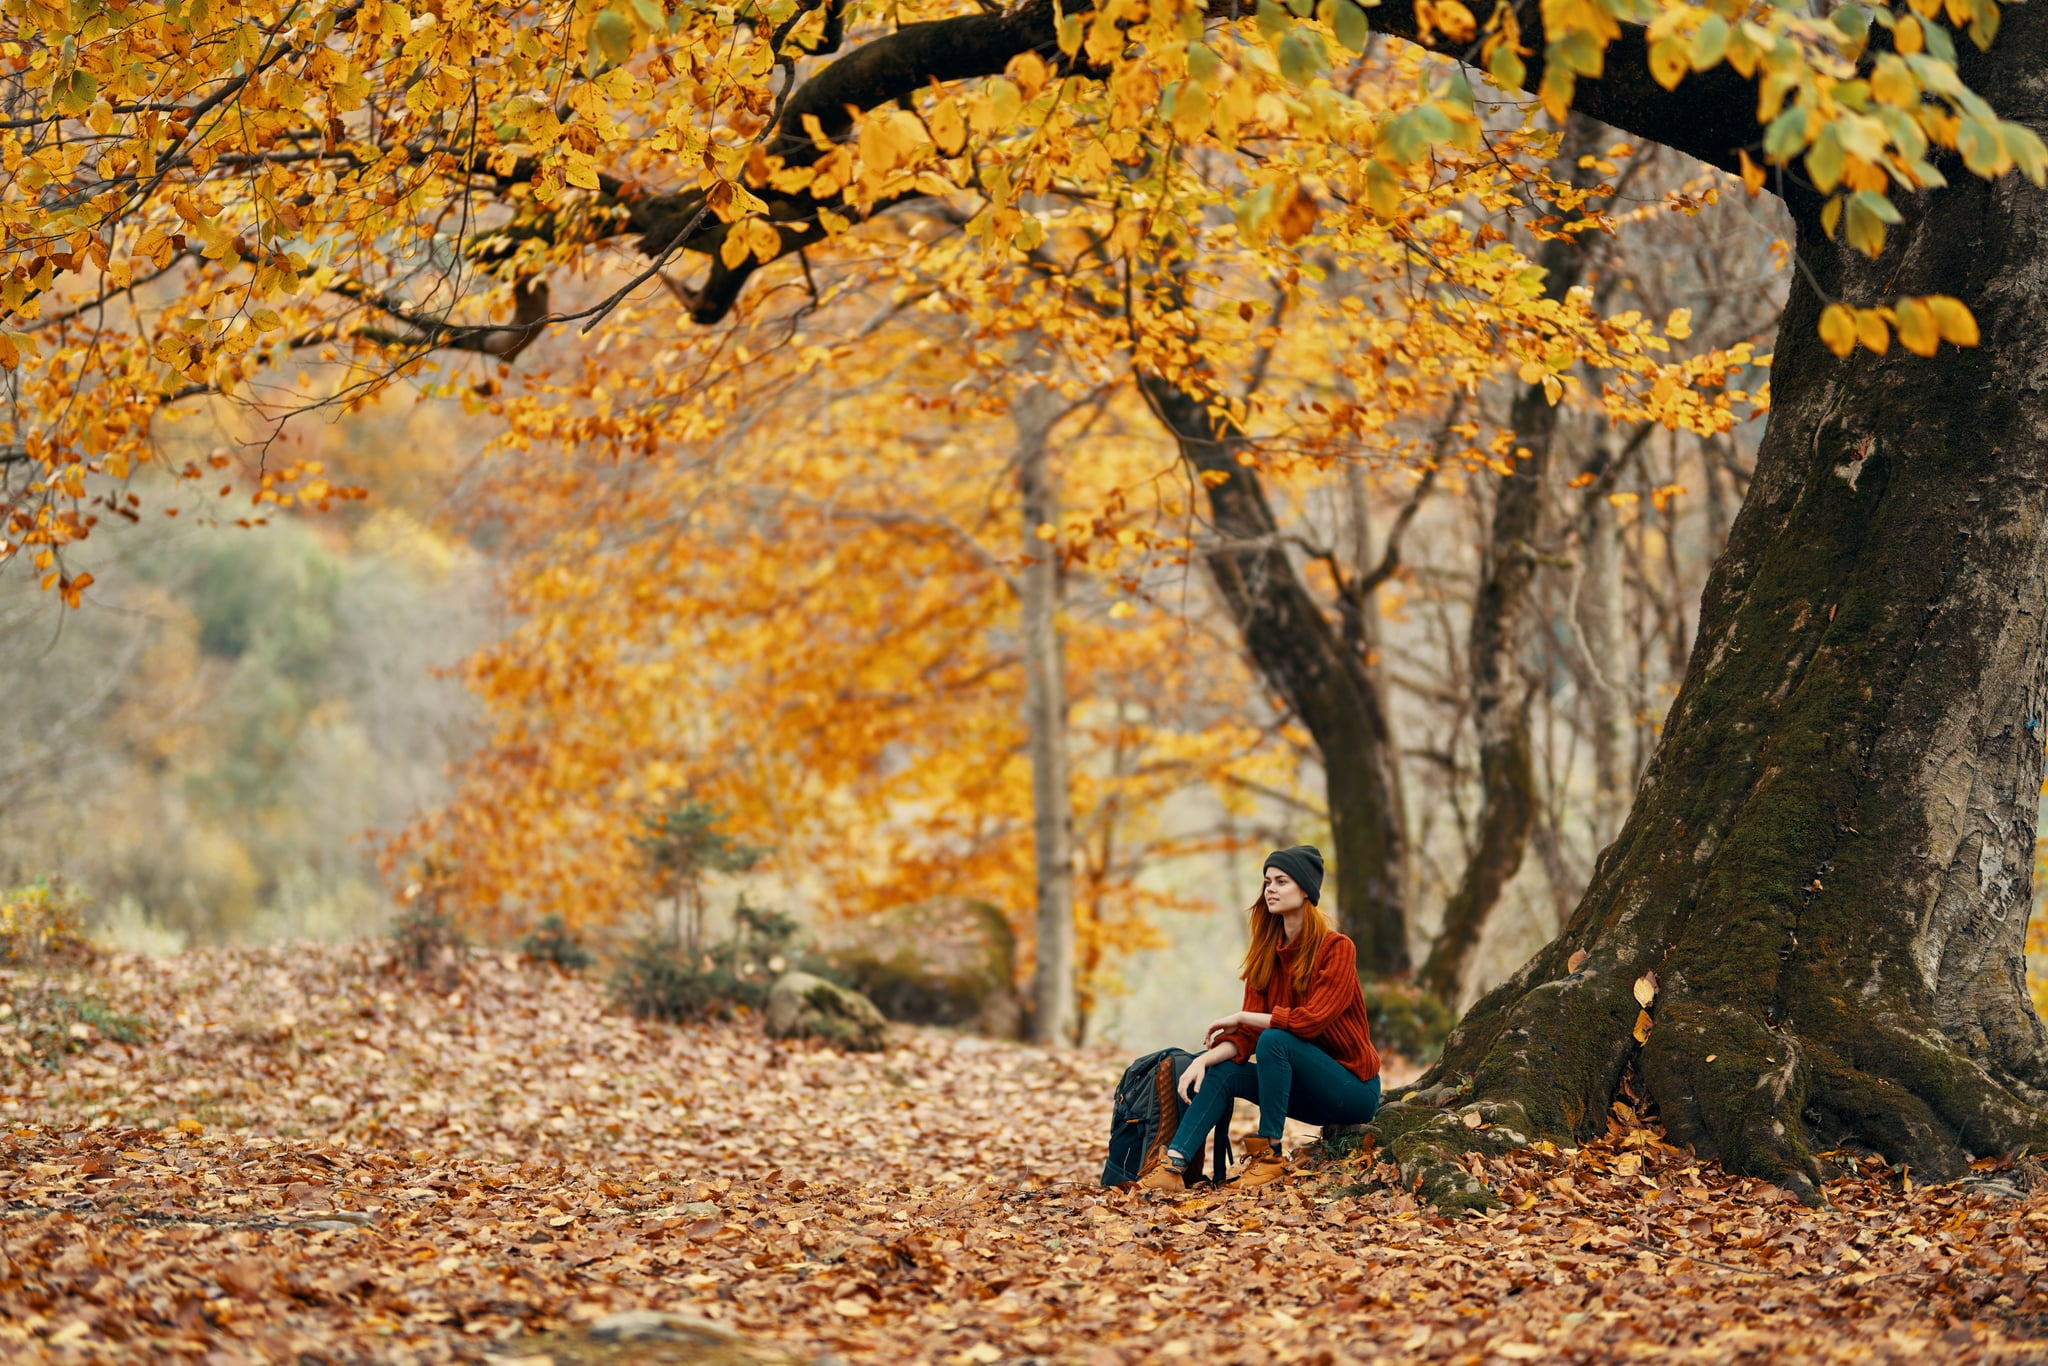 A woman on nature walks in the autumn forest and rests near a large tree